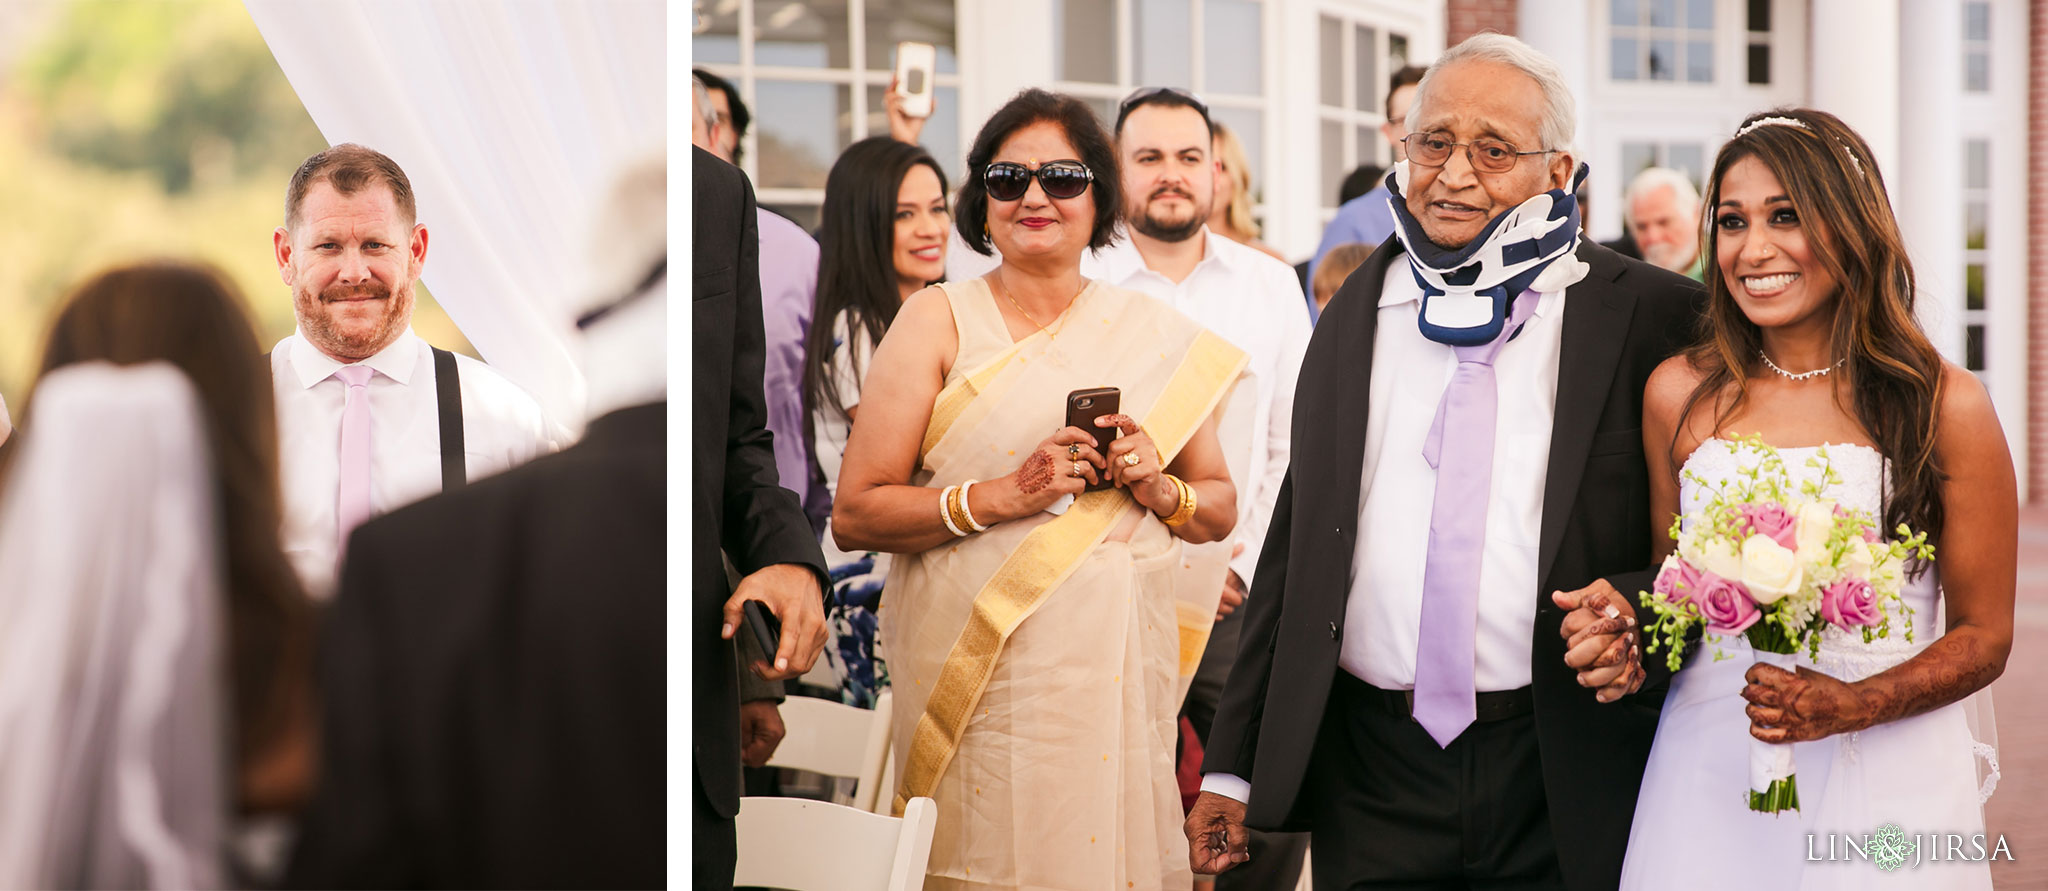 054 sherwood country club indian wedding ceremony photography